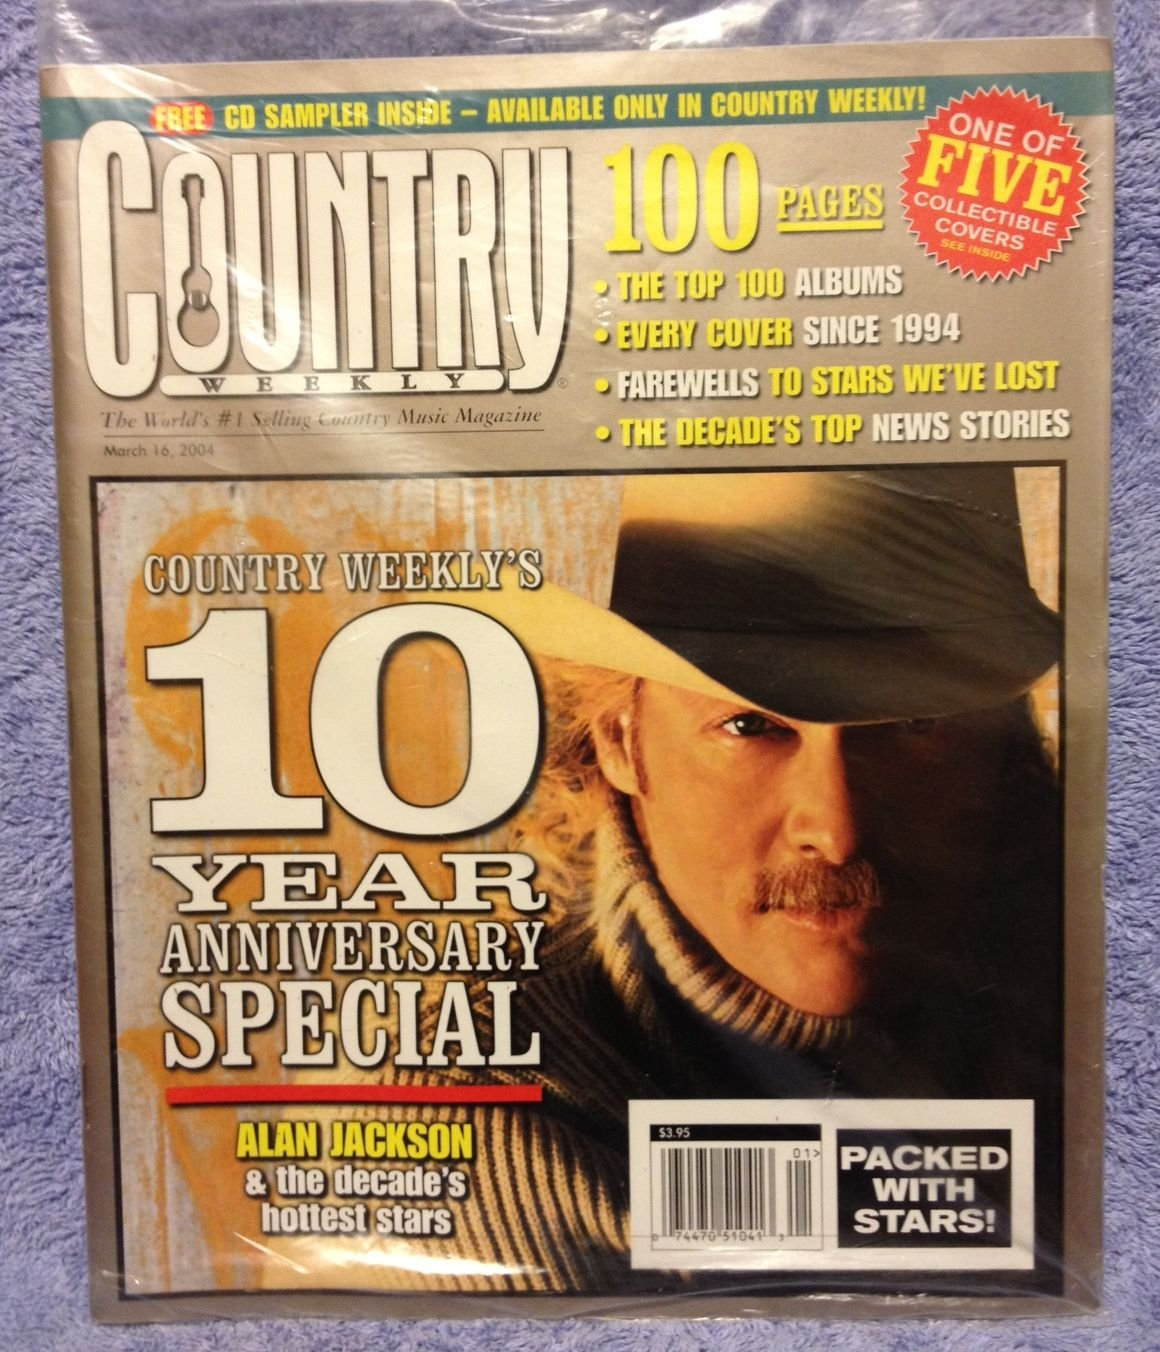 Country Weekly Magazine - March 16, 2004 Issue (Alan Jackson Cover) PDF